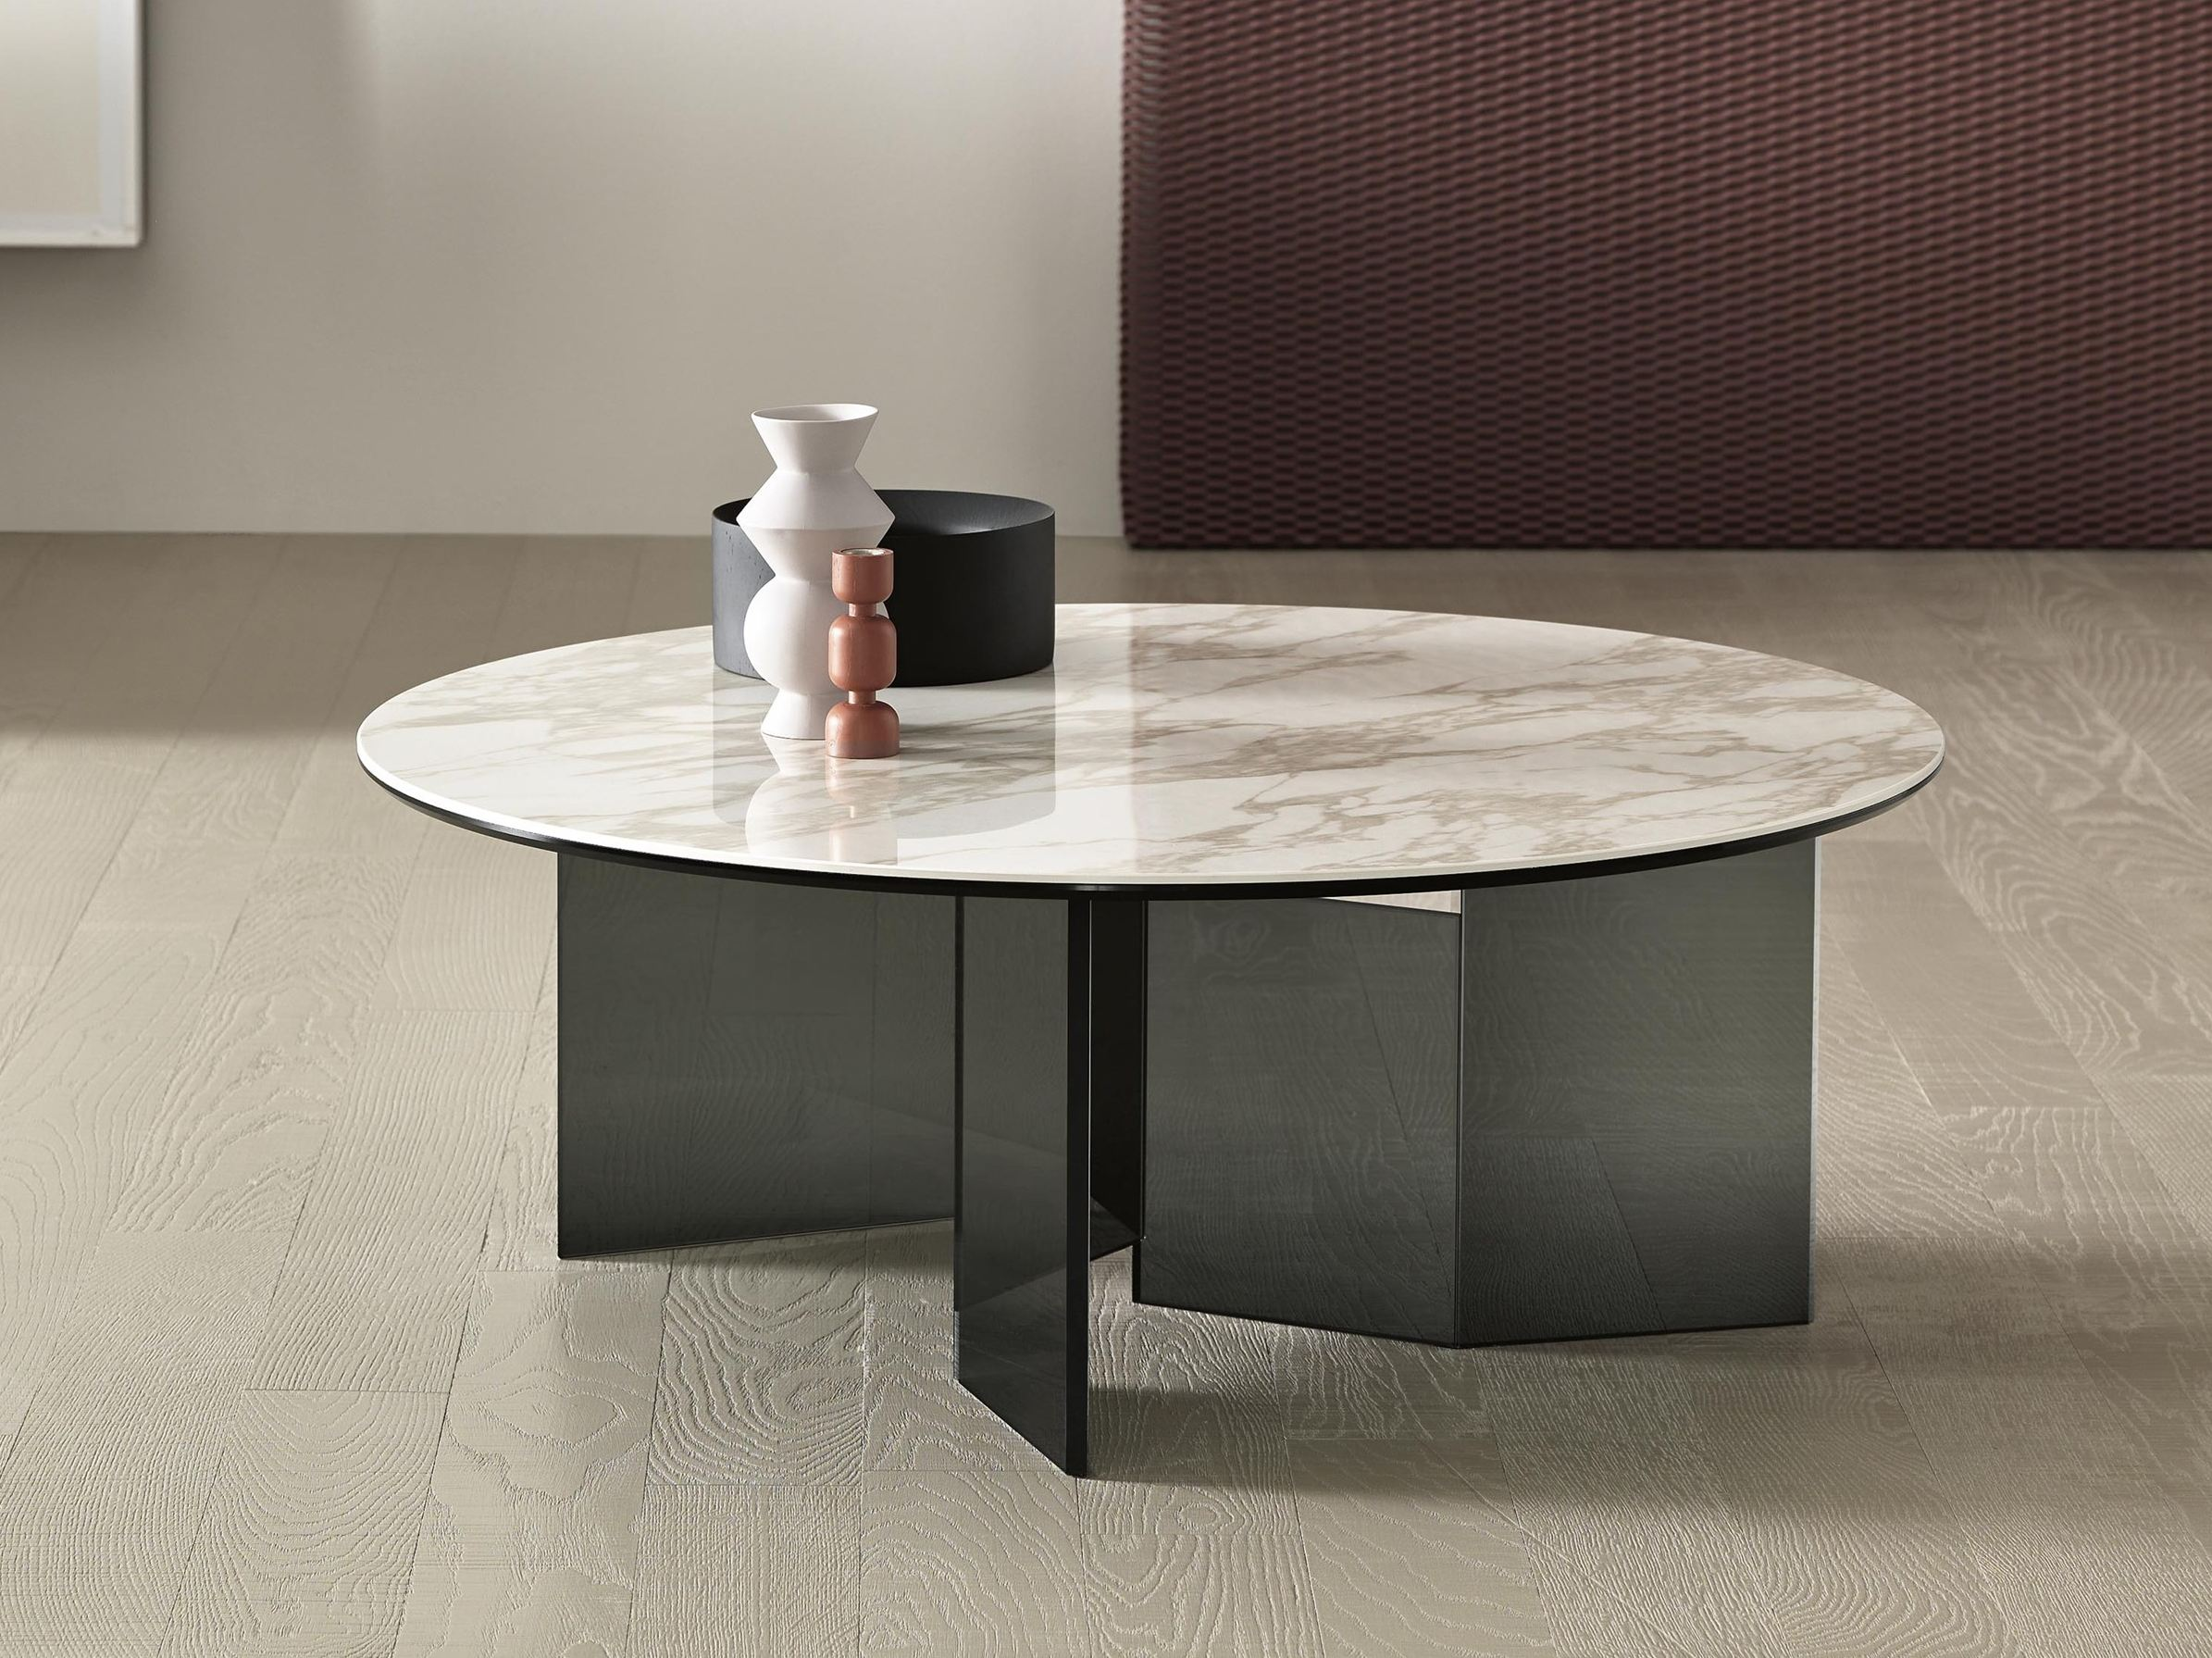 Tonelli Design | Glass Design Furniture And Furnishings | Archiproducts